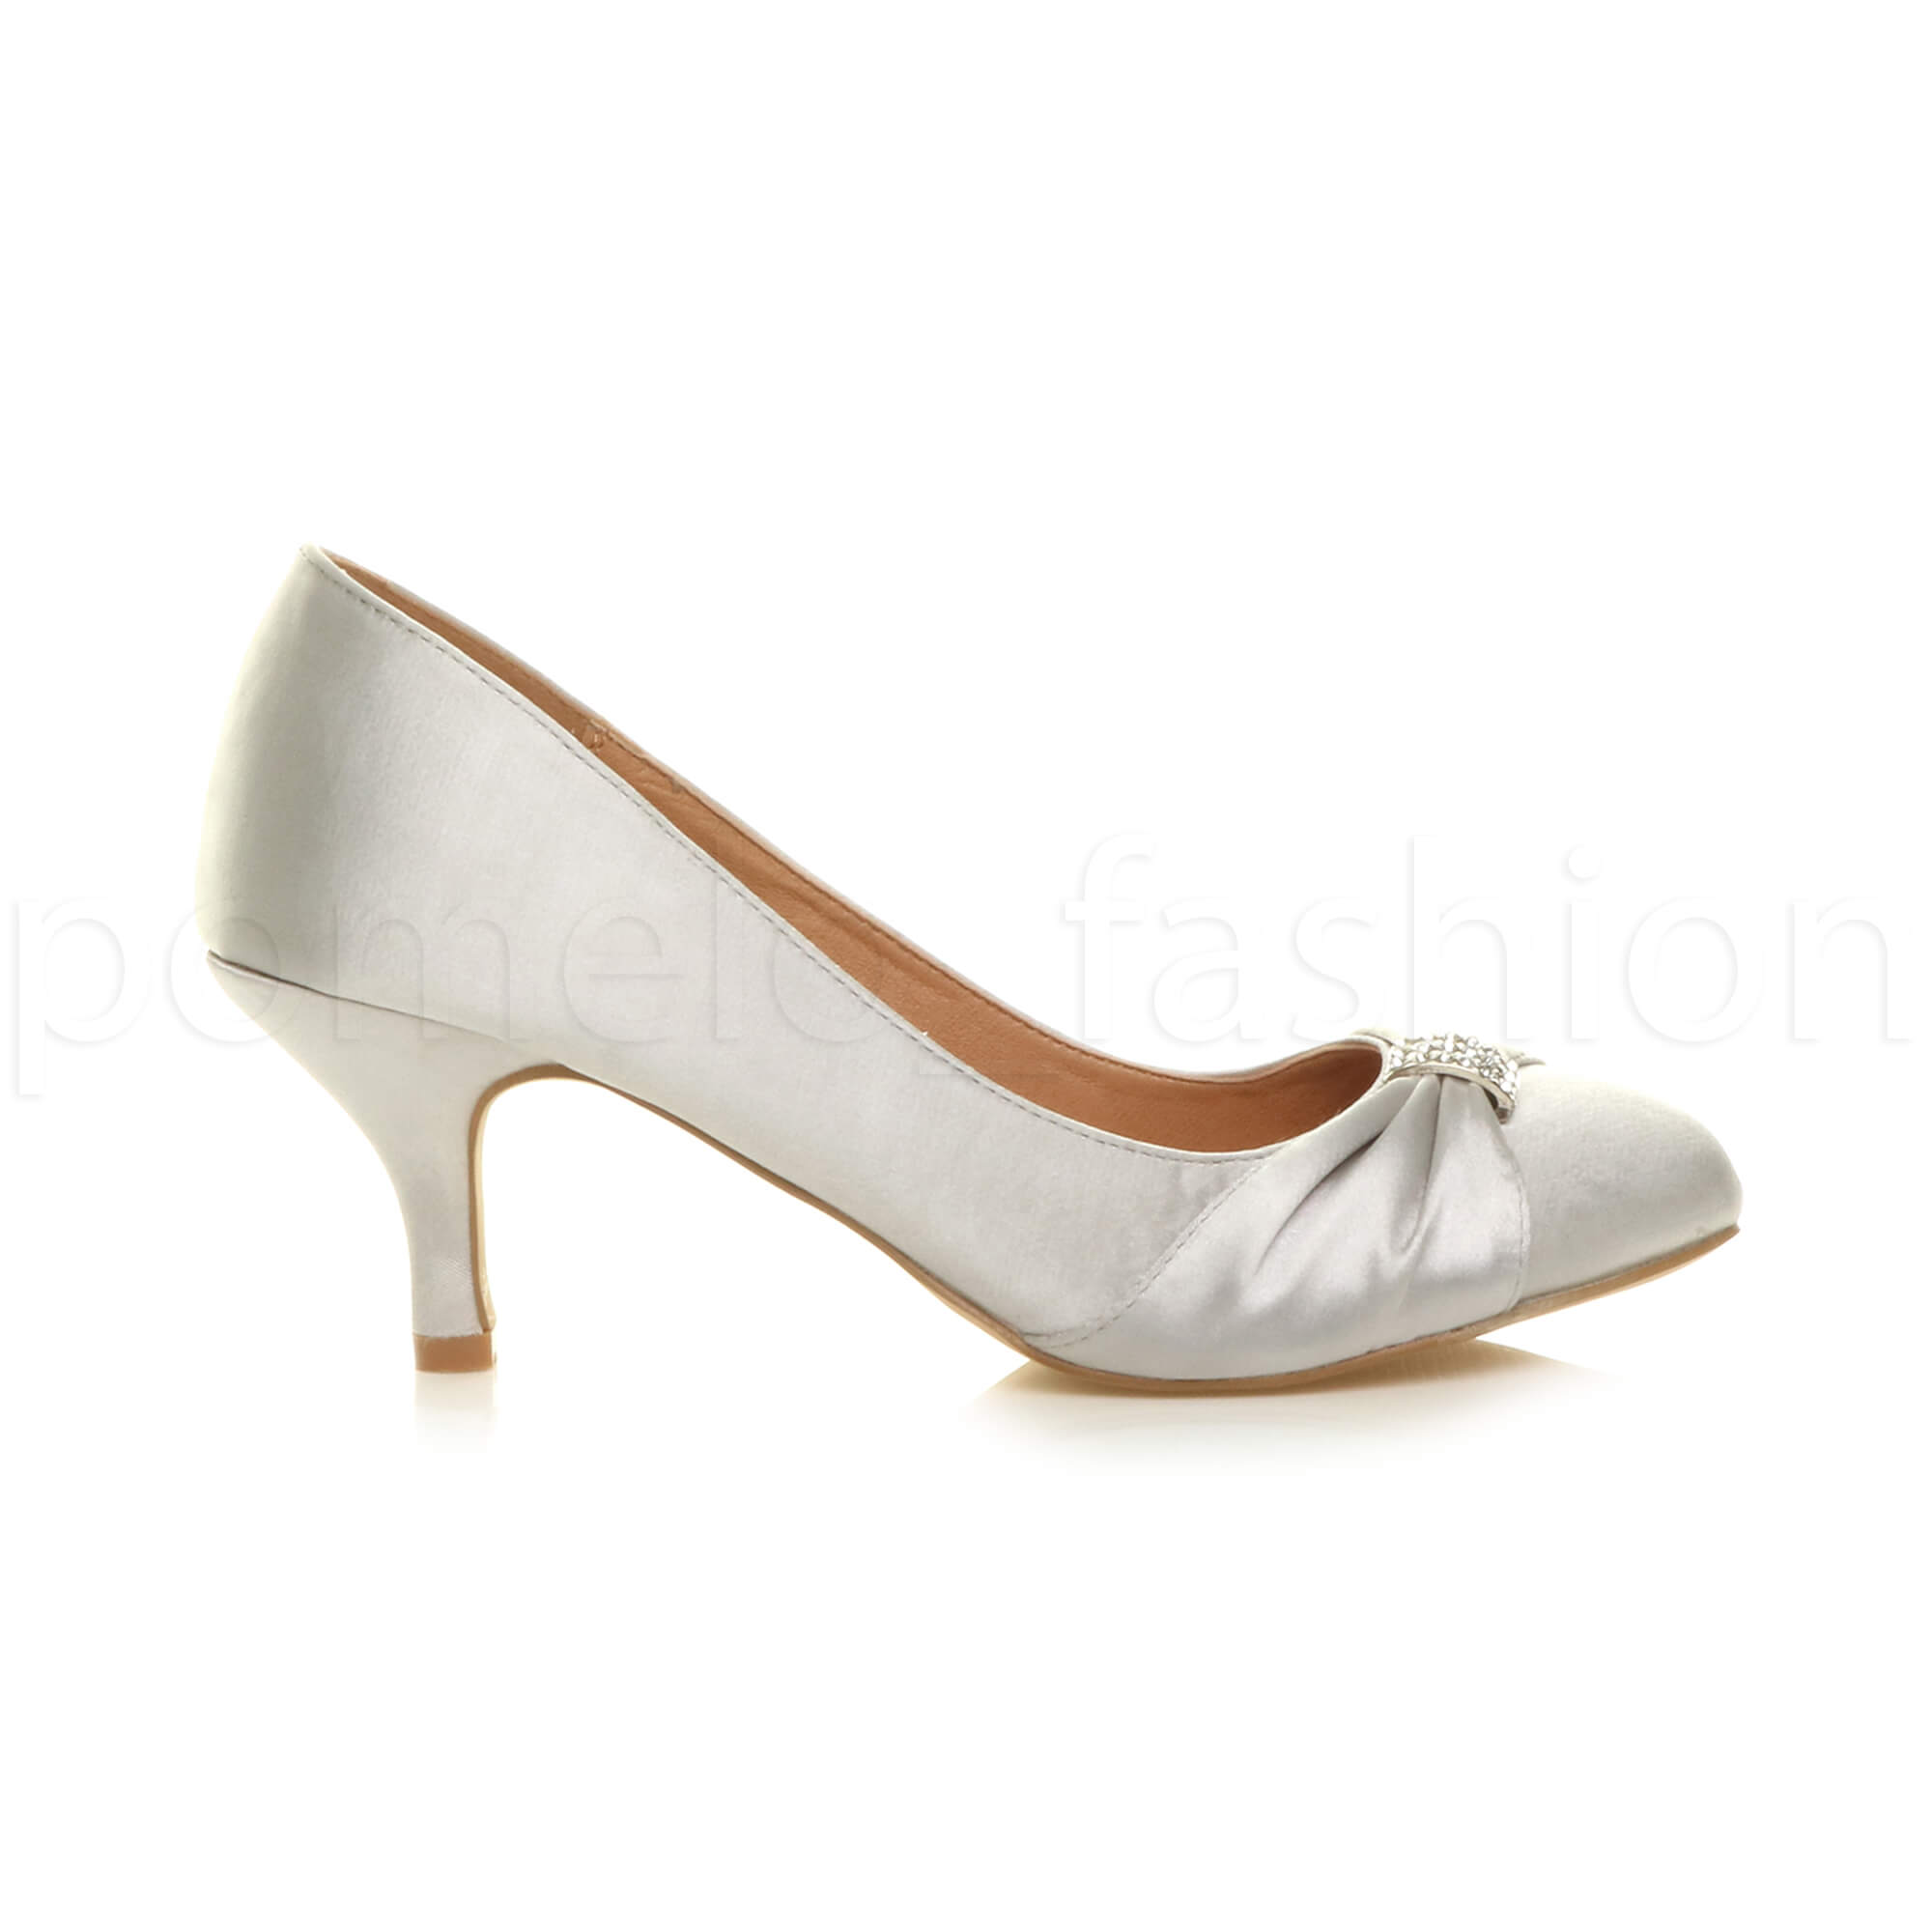 0d25d9657b5 Womens Ladies Low Mid Heel Diamante Party Smart Evening Court Shoes Size UK  5 / EU 38 / US 7 Silver Satin Beach